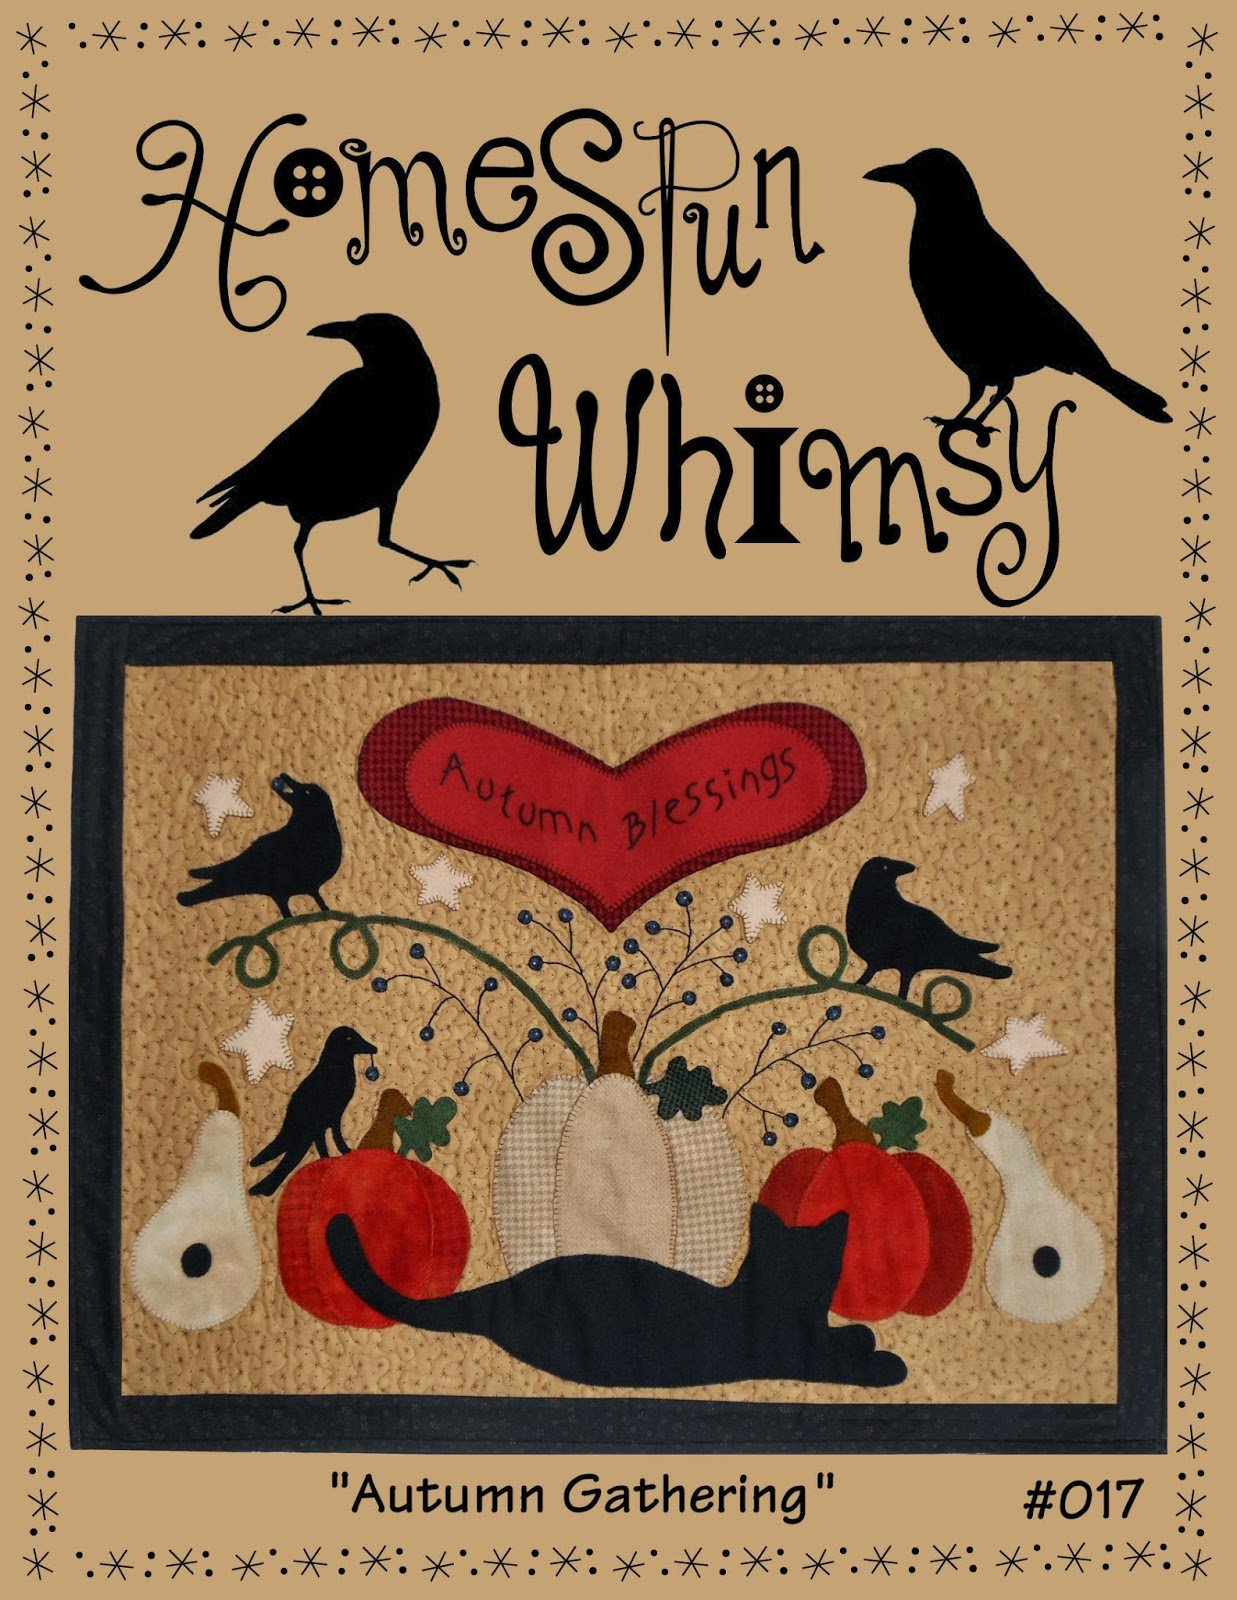 Autumn Gathering Quilt Pattern By Lori Of Homespun Whimsy